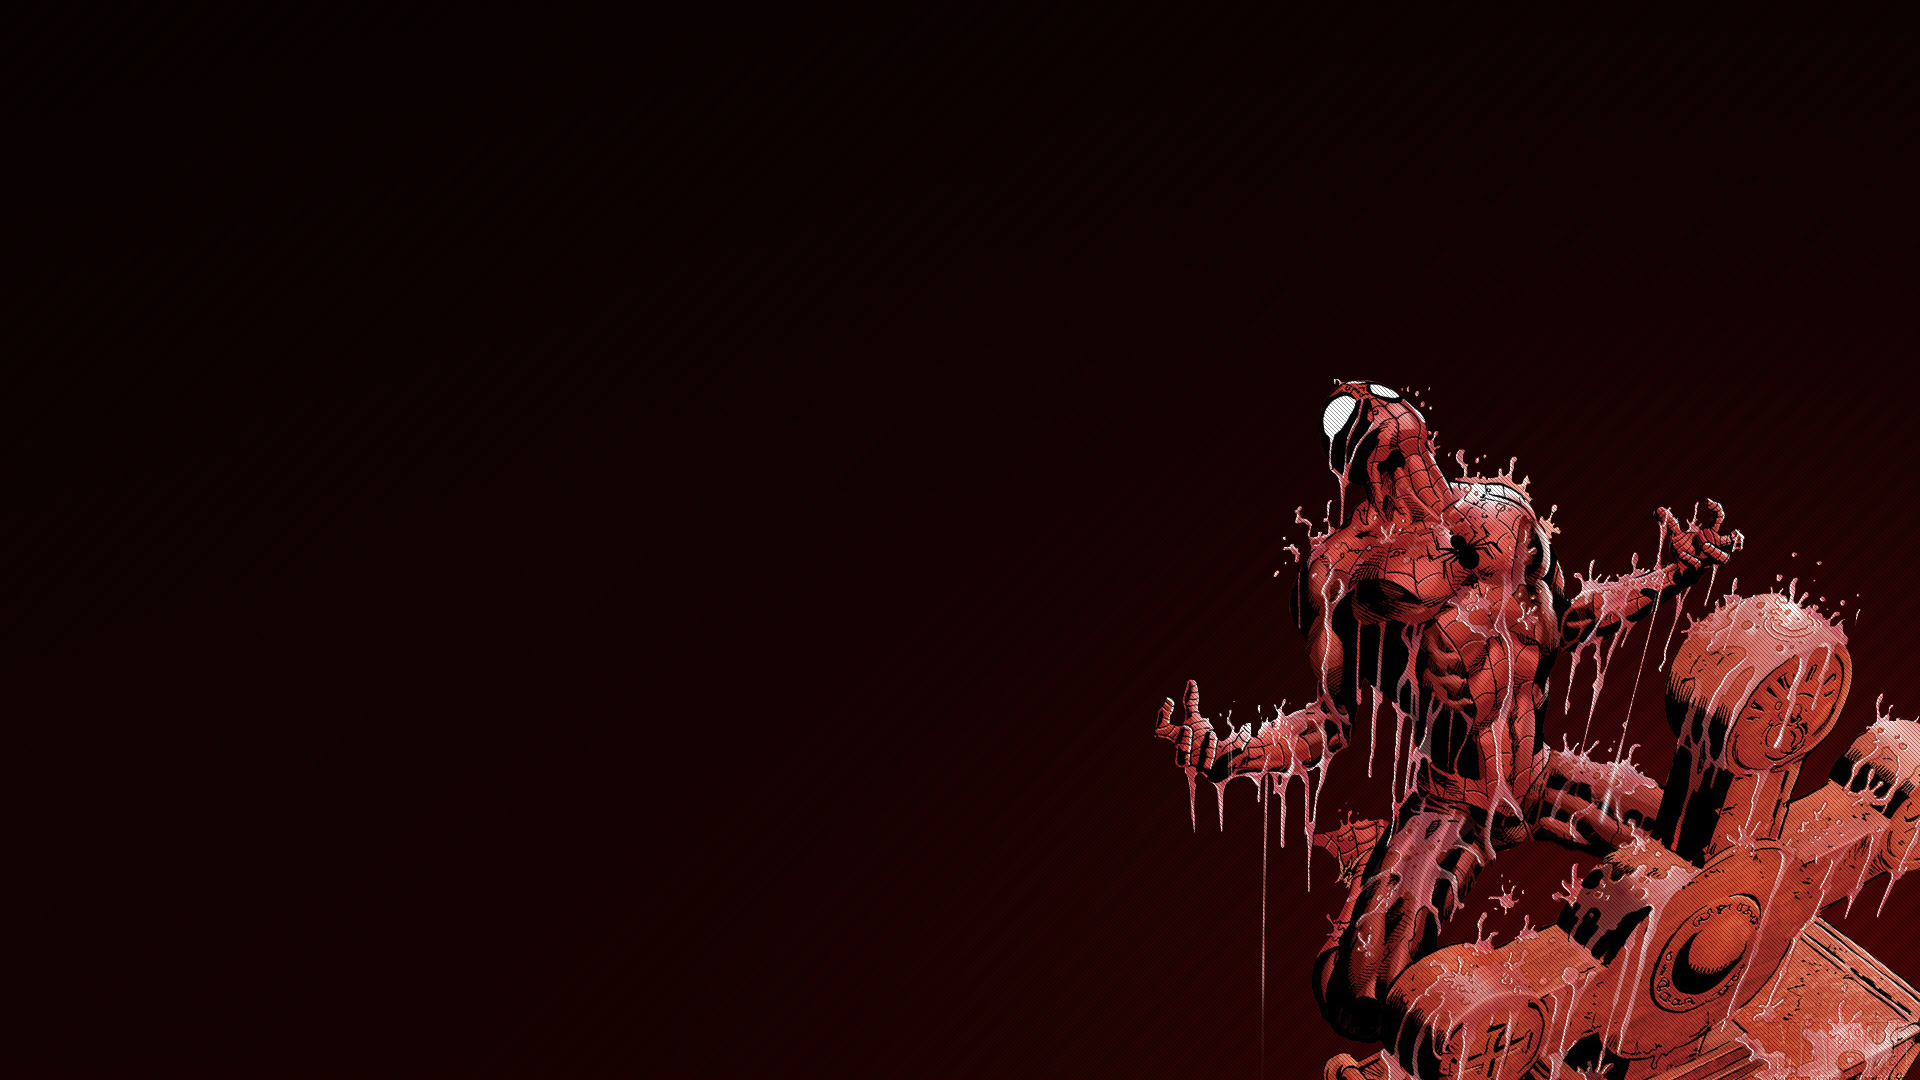 Carnage Wallpaper Hd 40 Amazing Spiderman Wallpaper Hd For Pc